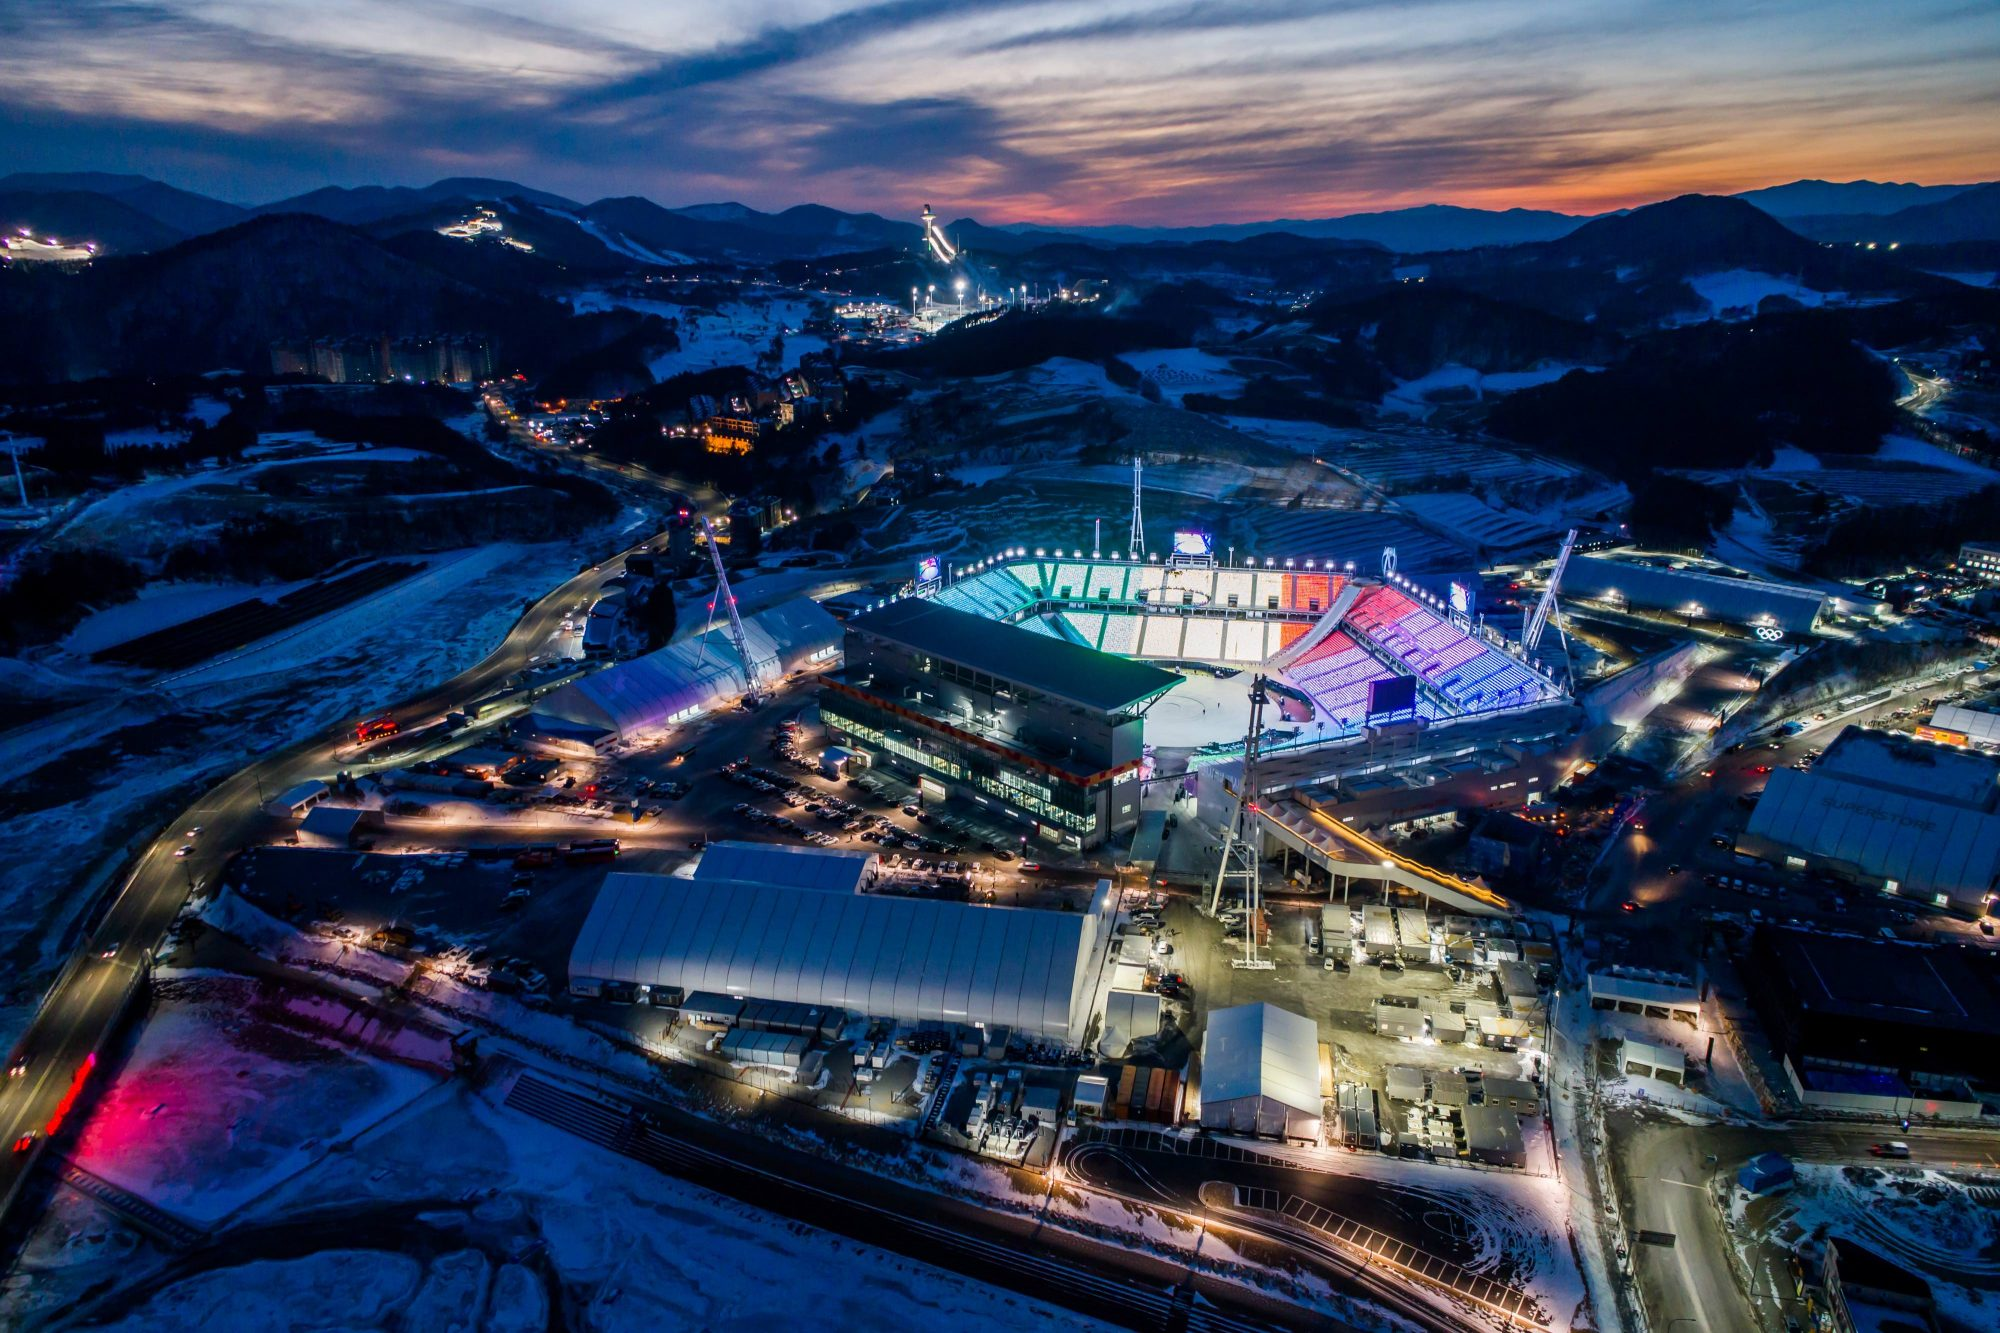 Photo of the Pyeongchang Olympic Stadium, Where the Olympics Closing Ceremony Will Be Held